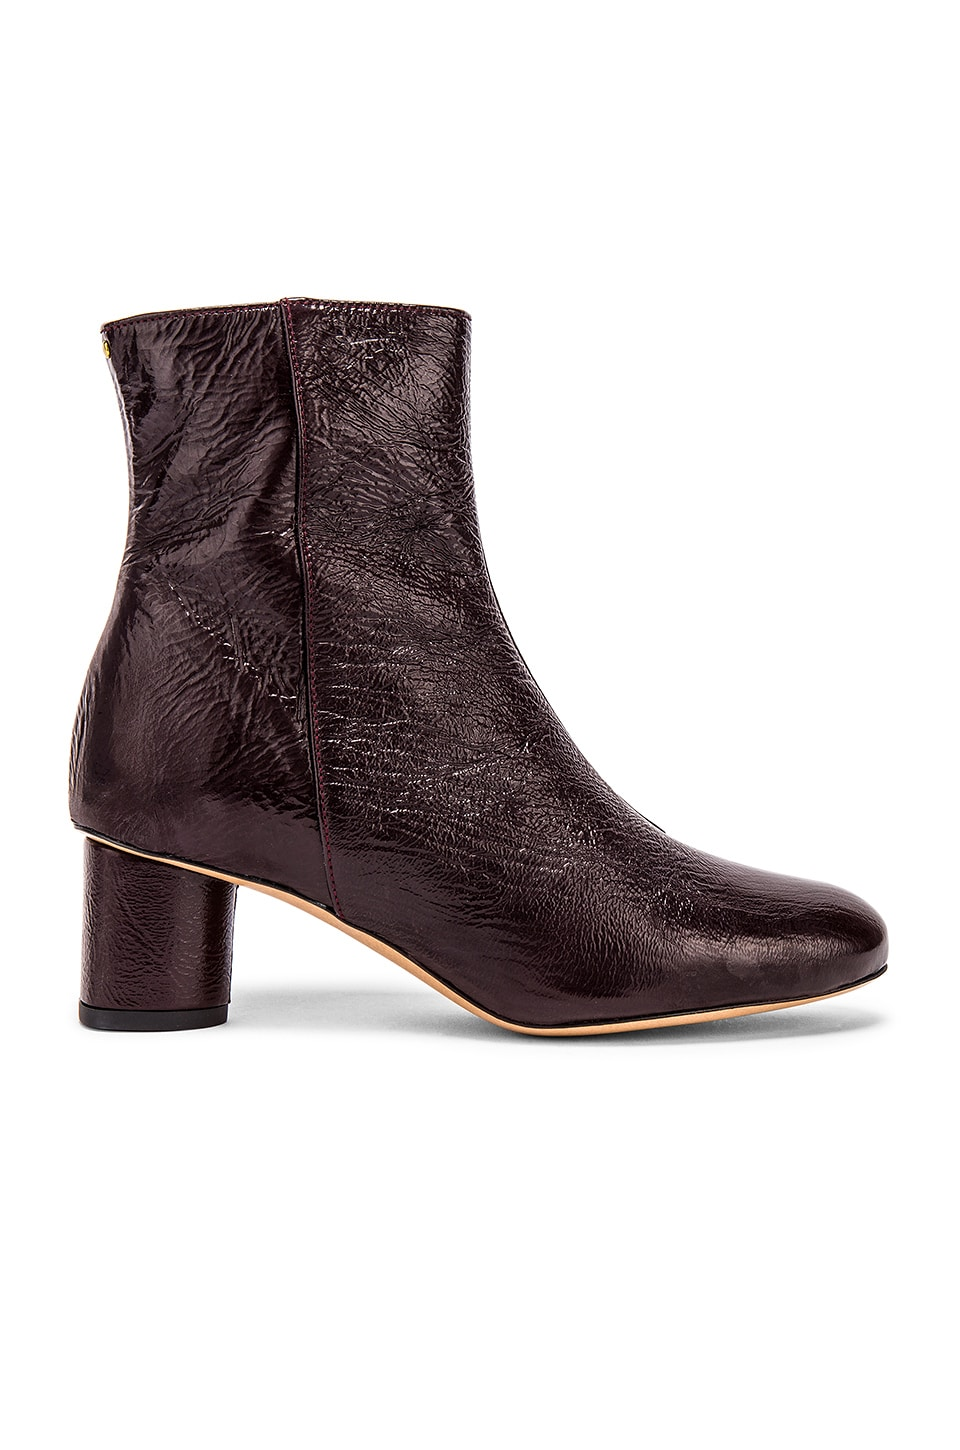 Jerome Dreyfuss Patricia 50 Bootie in Bordeaux